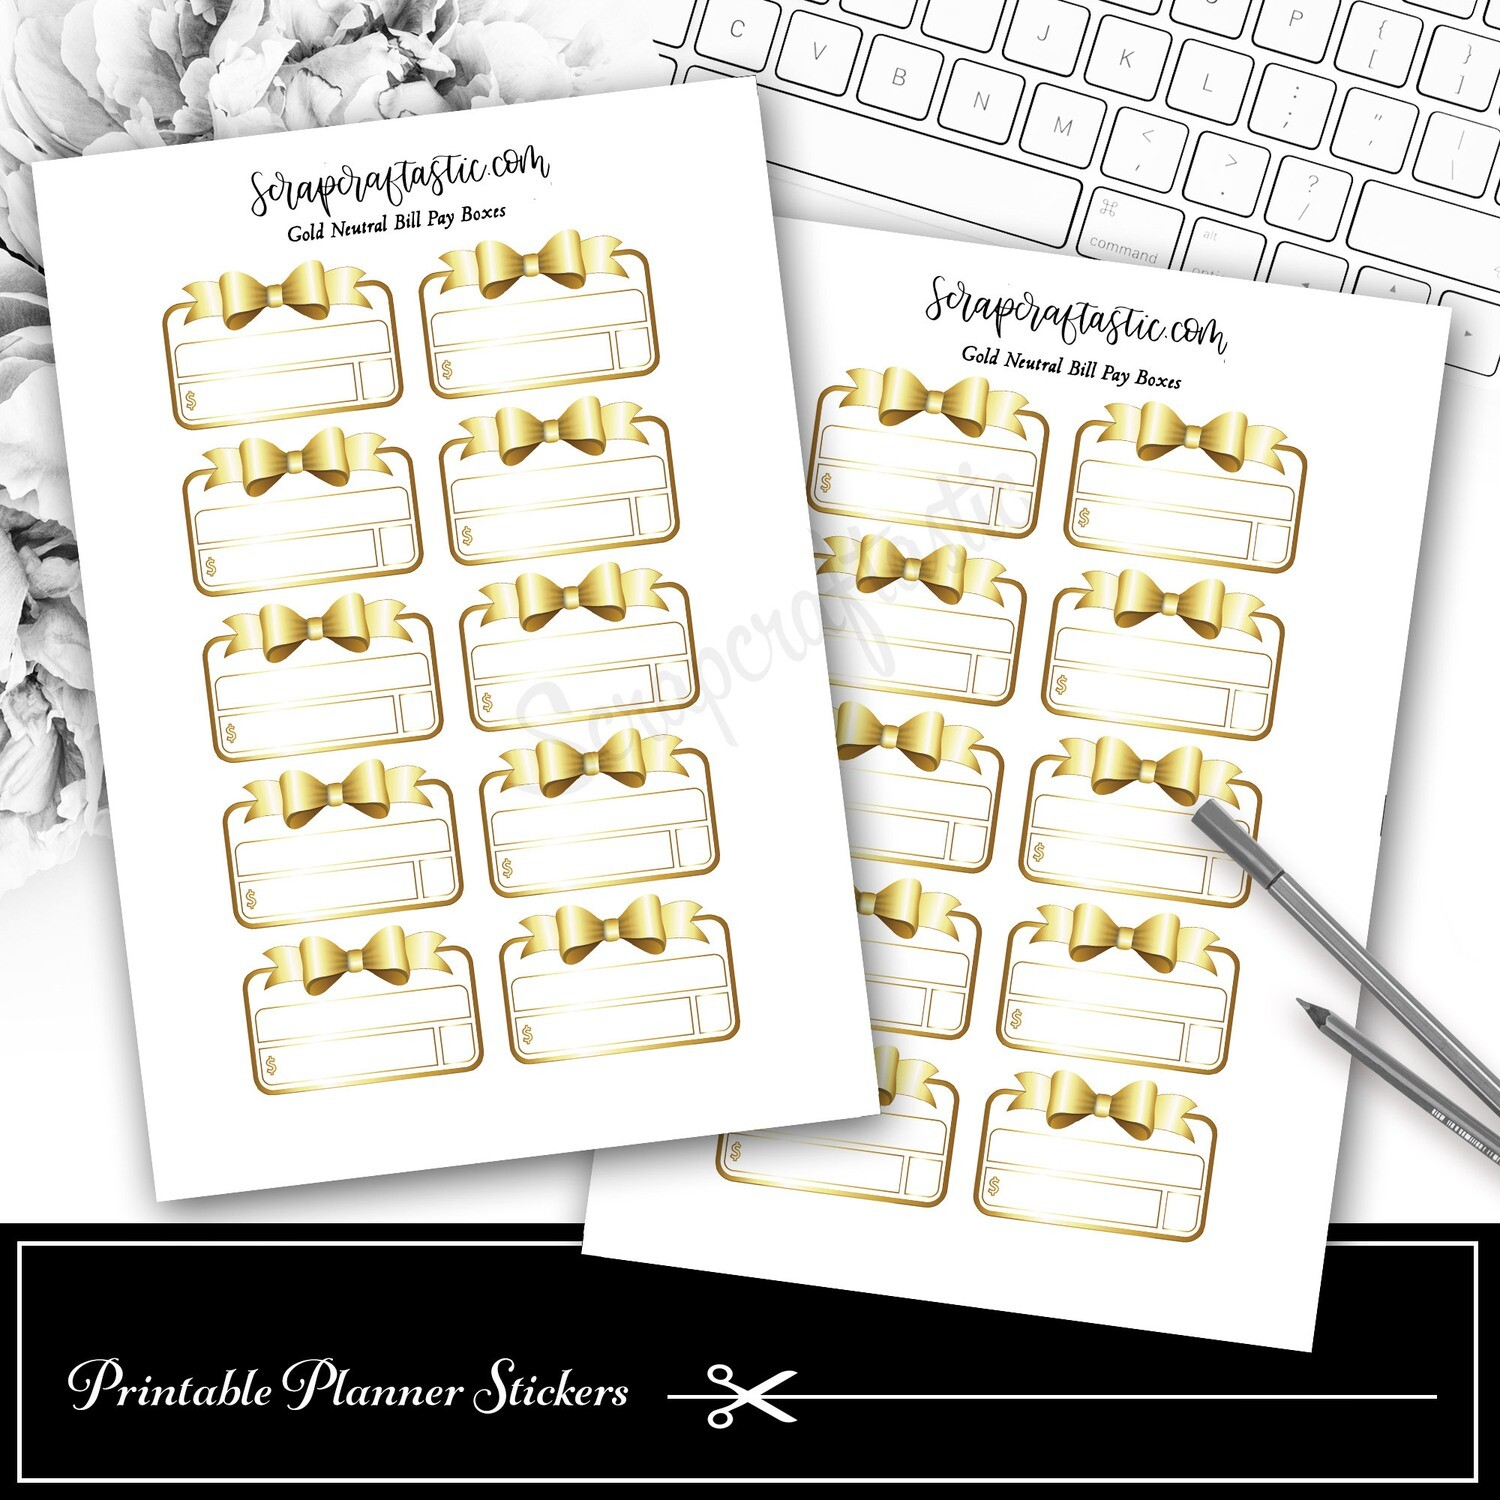 Neutral Metals Gold Bow Bill Pay Budget Printable Planner Stickers